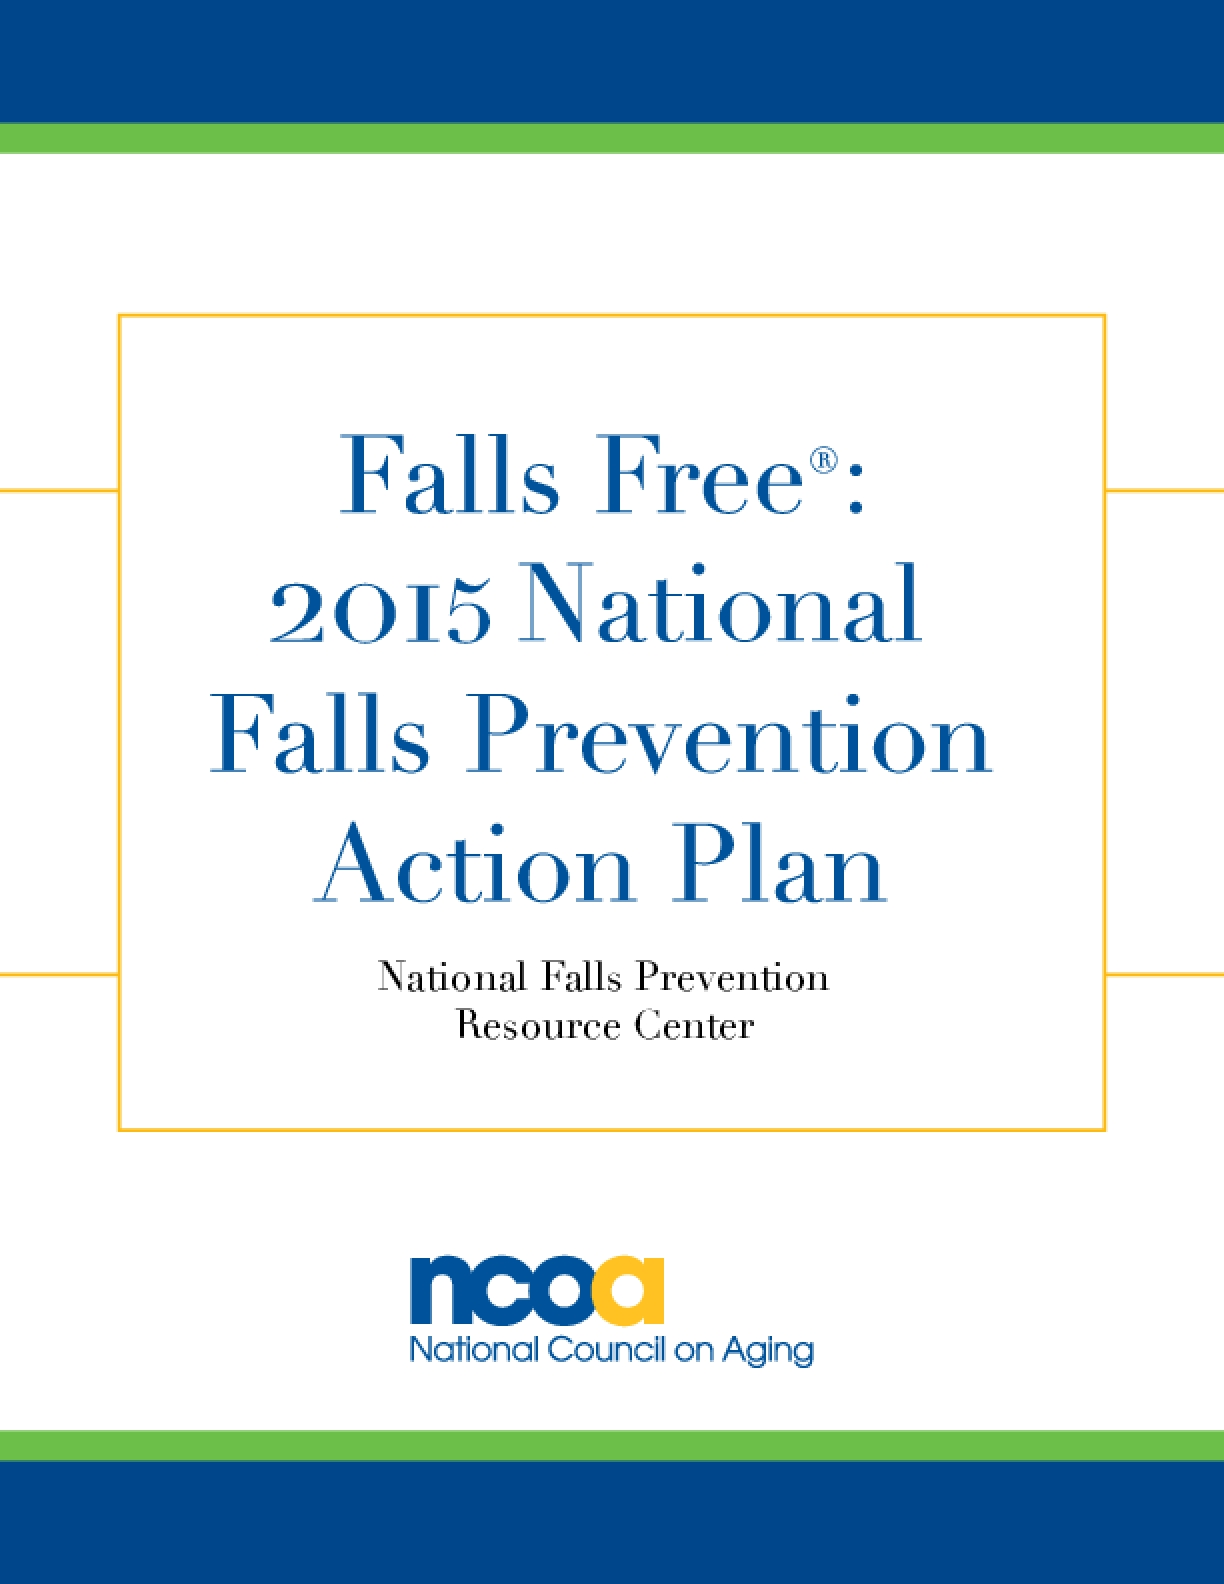 Falls Free 2015 National Falls Prevention Action Plan